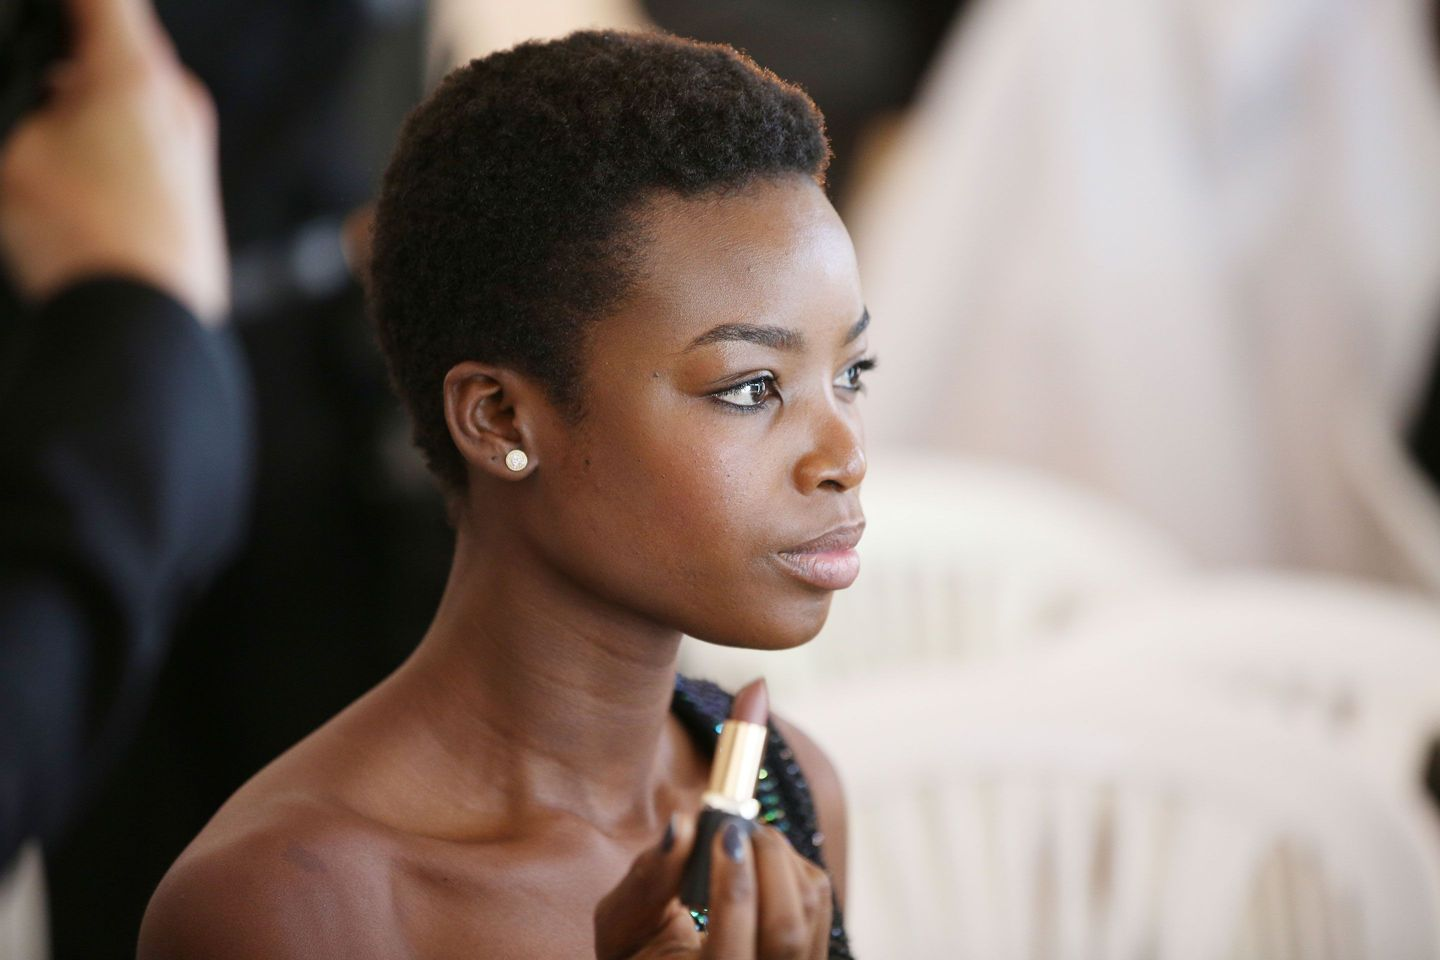 Model @IamMariaBorges talks beauty with Vogue: https://t.co/rKSiOecjIR https://t.co/tpQEg9h91K